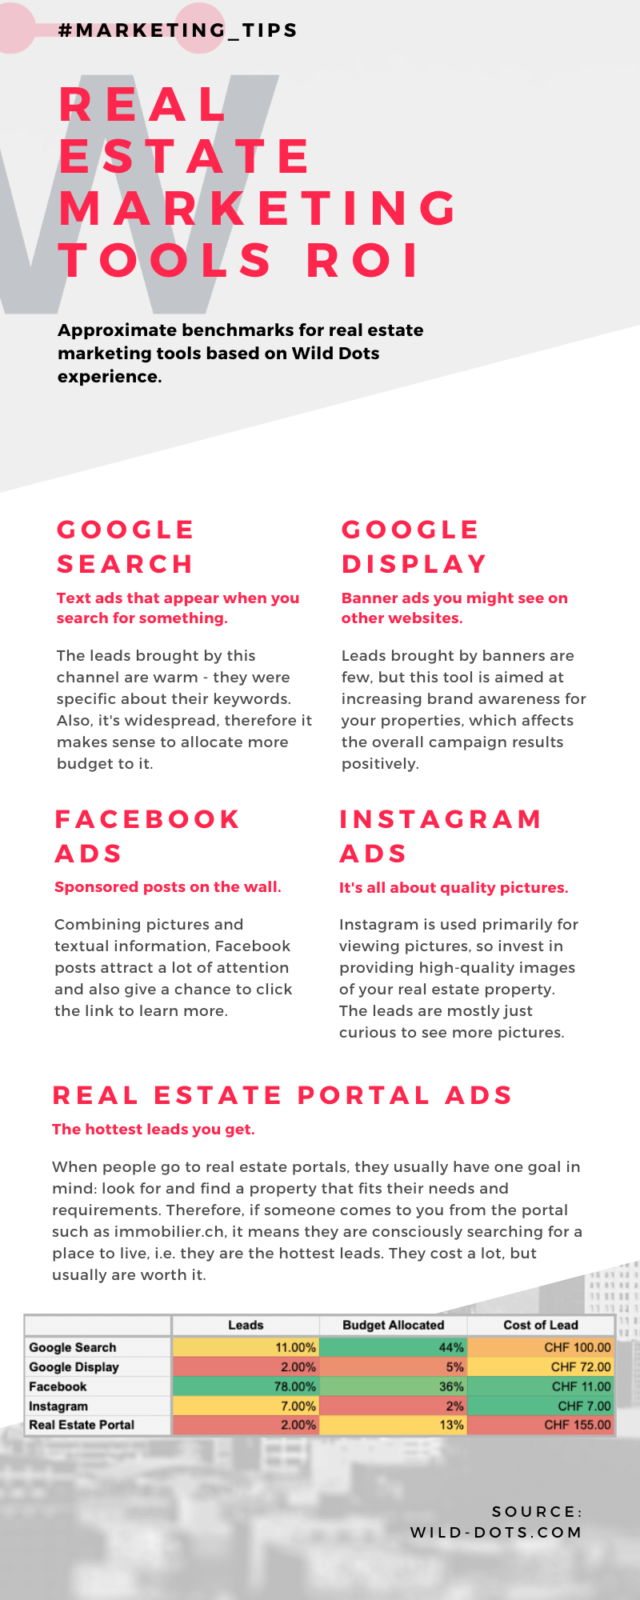 Marketing Tools for Real Estate Ranking 2021